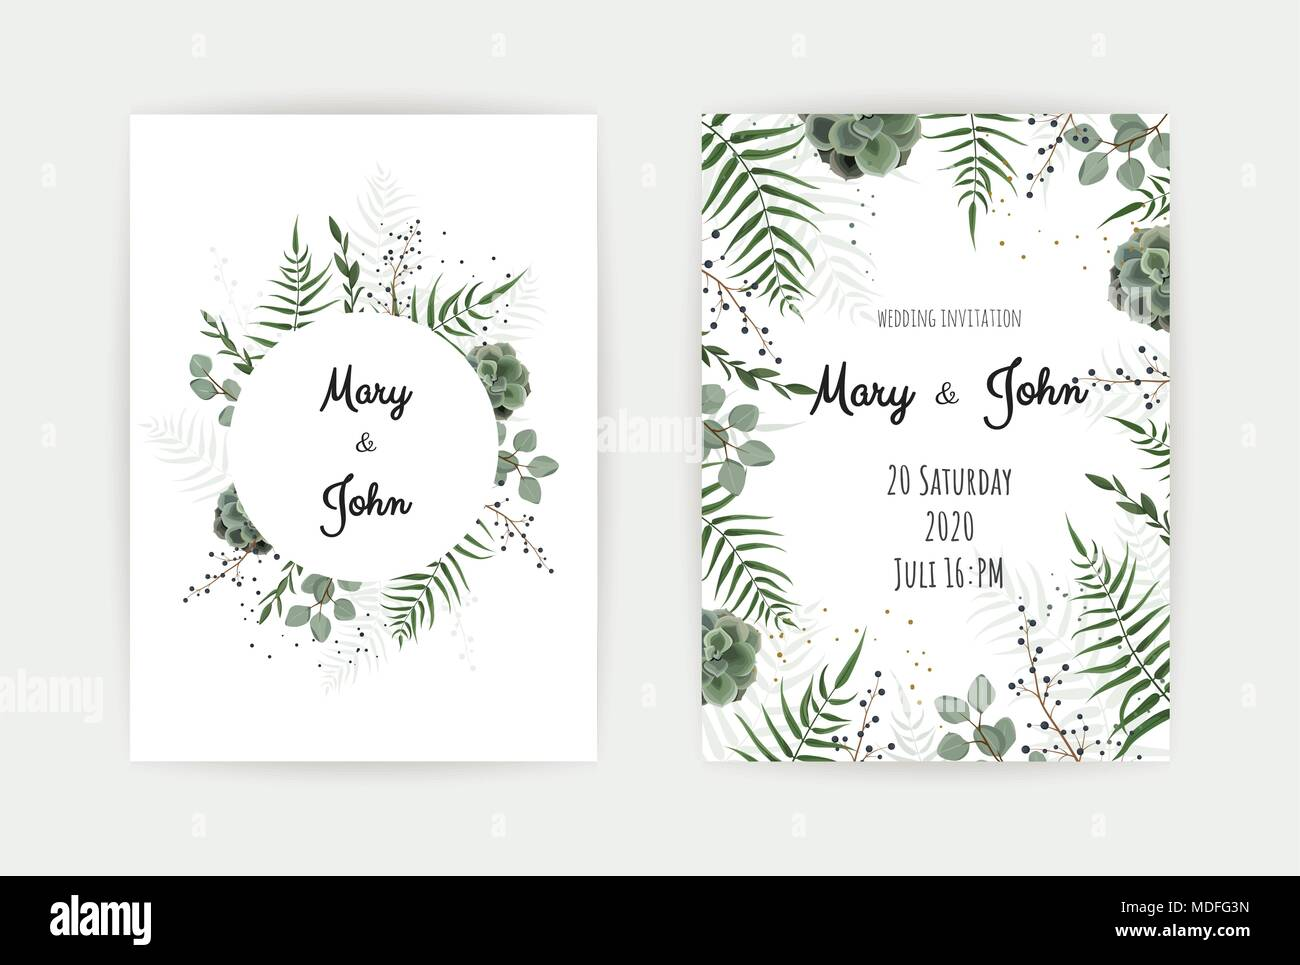 Wedding invitation with green leaf eucalyptus branches decorative wedding invitation with green leaf eucalyptus branches decorative wreath frame pattern vector elegant watercolor rustic template stopboris Image collections